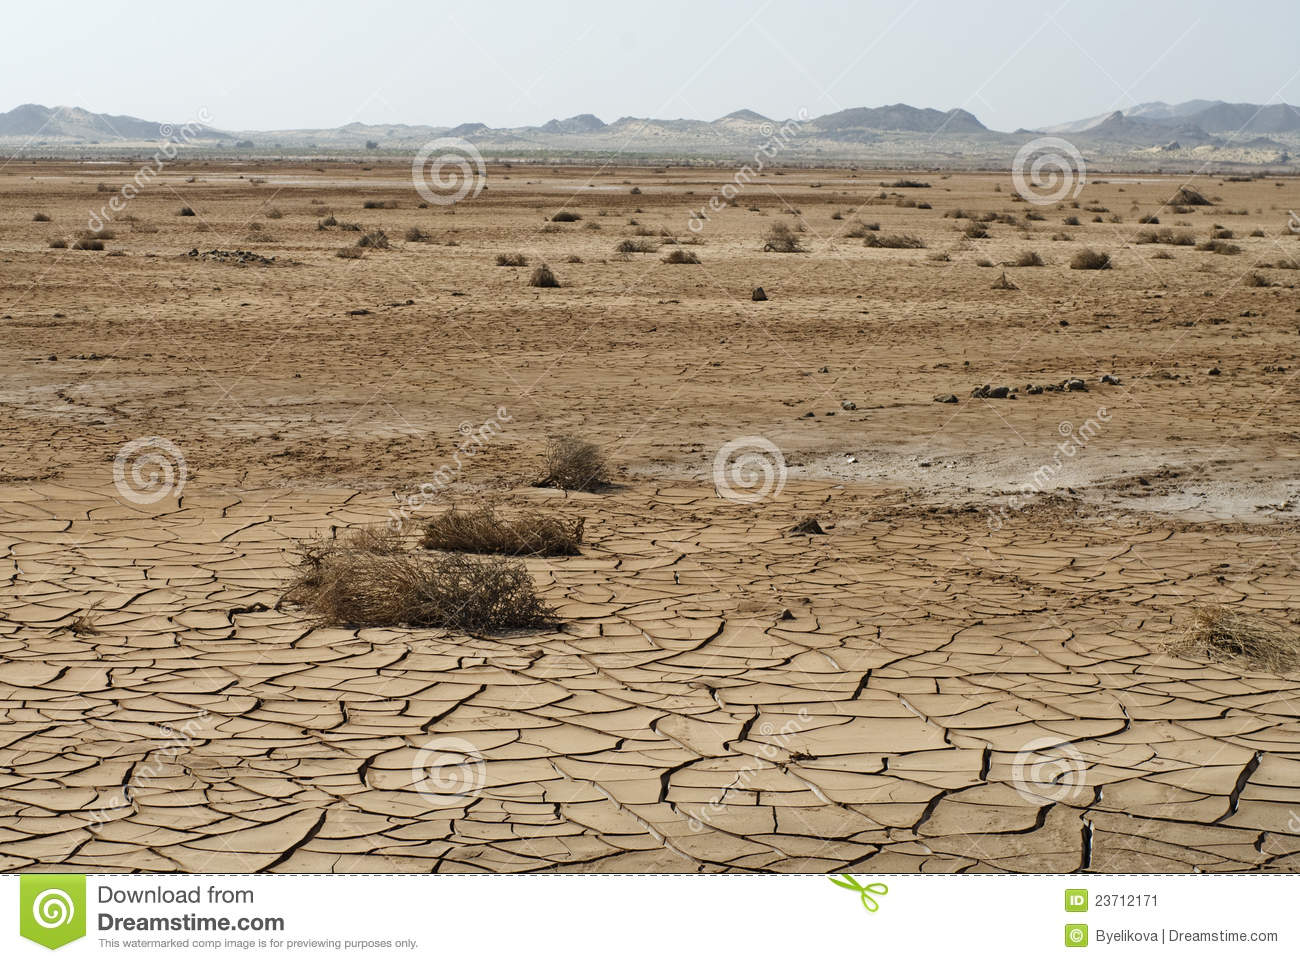 The Old Ship In The Dried Up Sea Stock Image - Image: 23712171